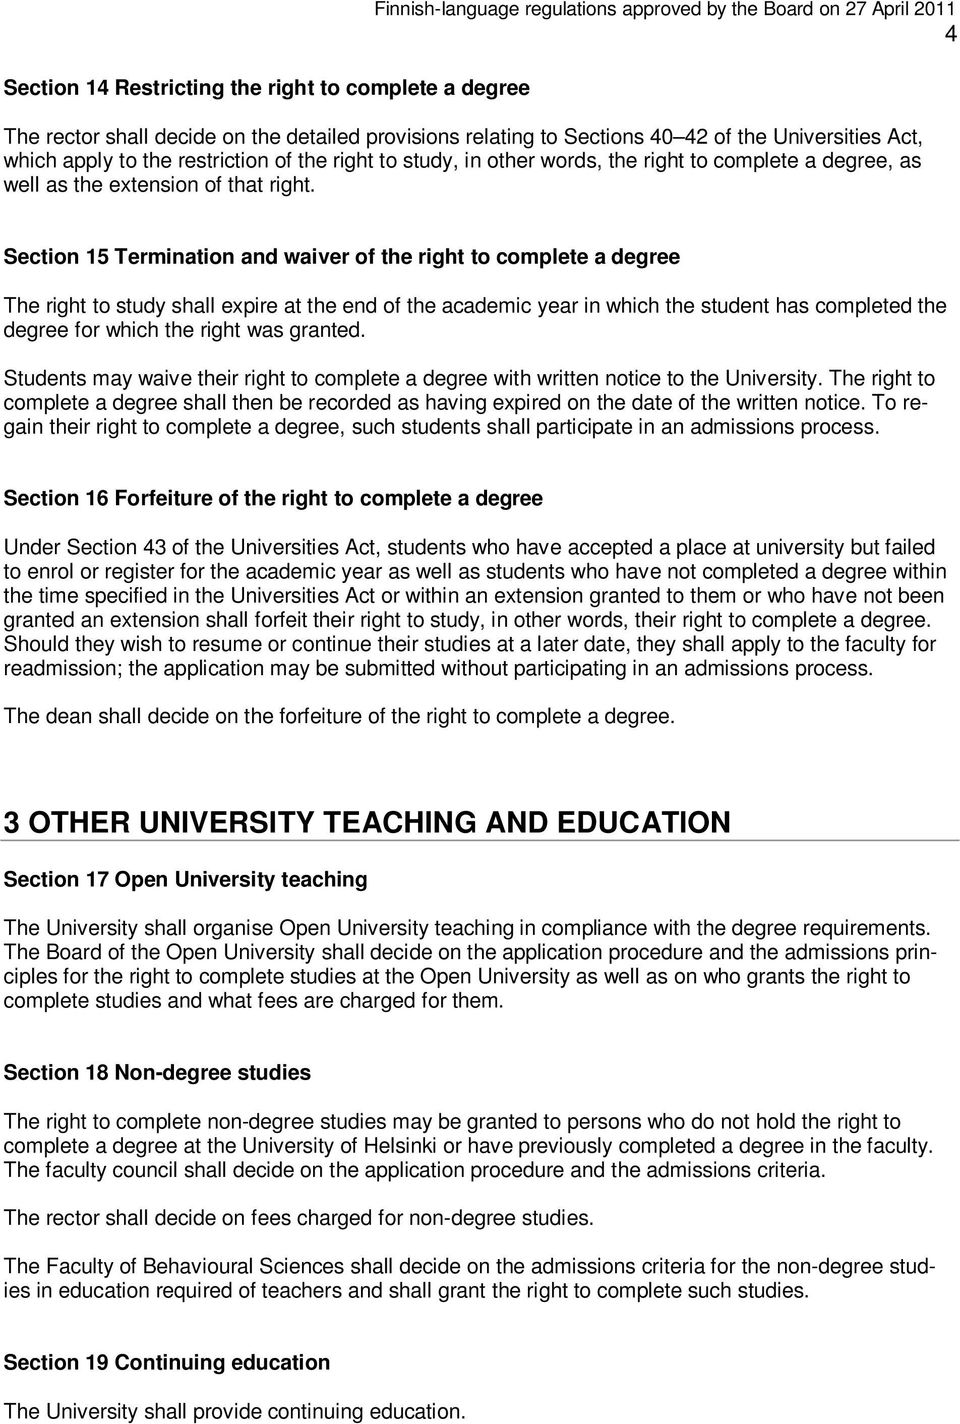 Section 15 Termination and waiver of the right to complete a degree The right to study shall expire at the end of the academic year in which the student has completed the degree for which the right